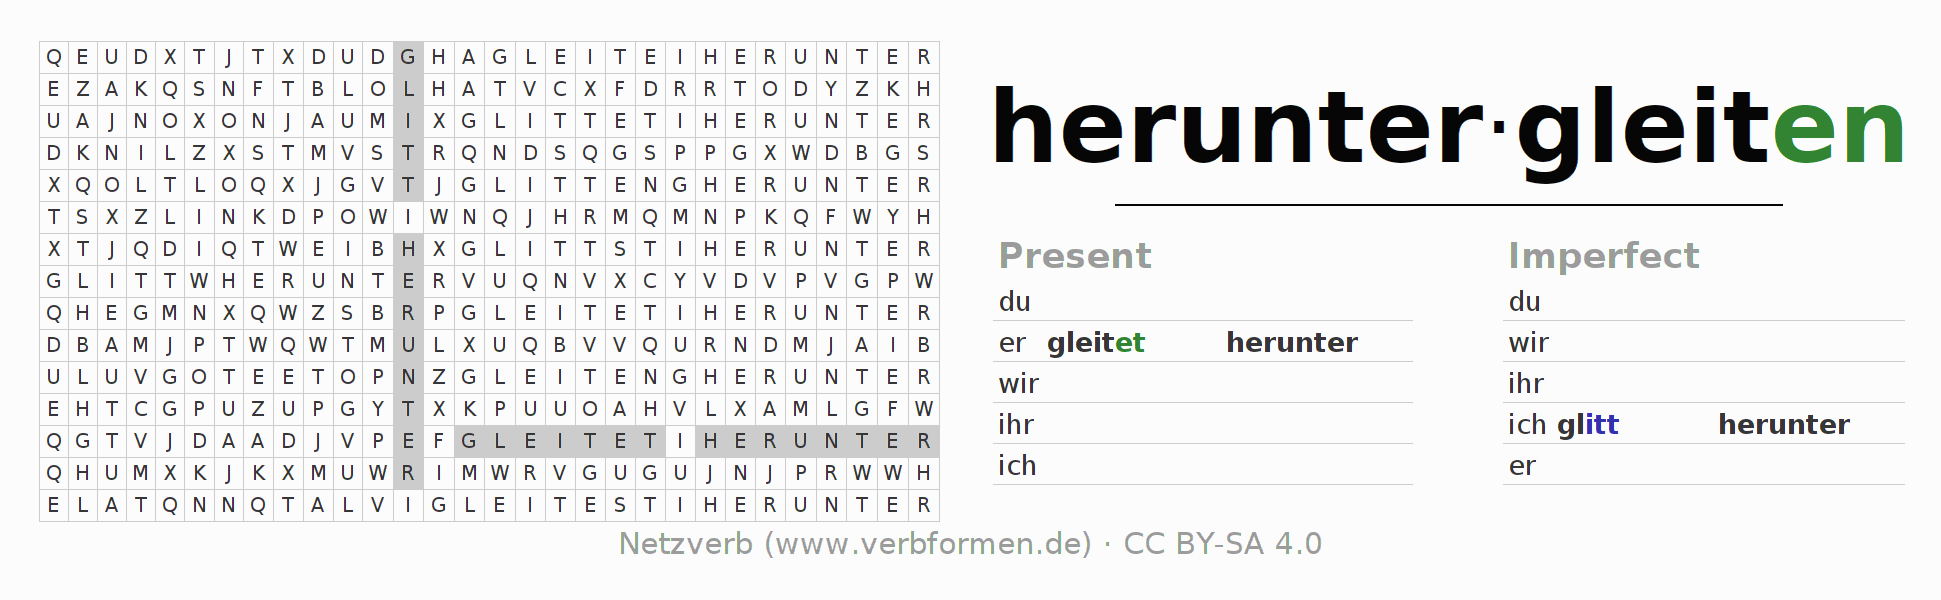 Word search puzzle for the conjugation of the verb heruntergleiten